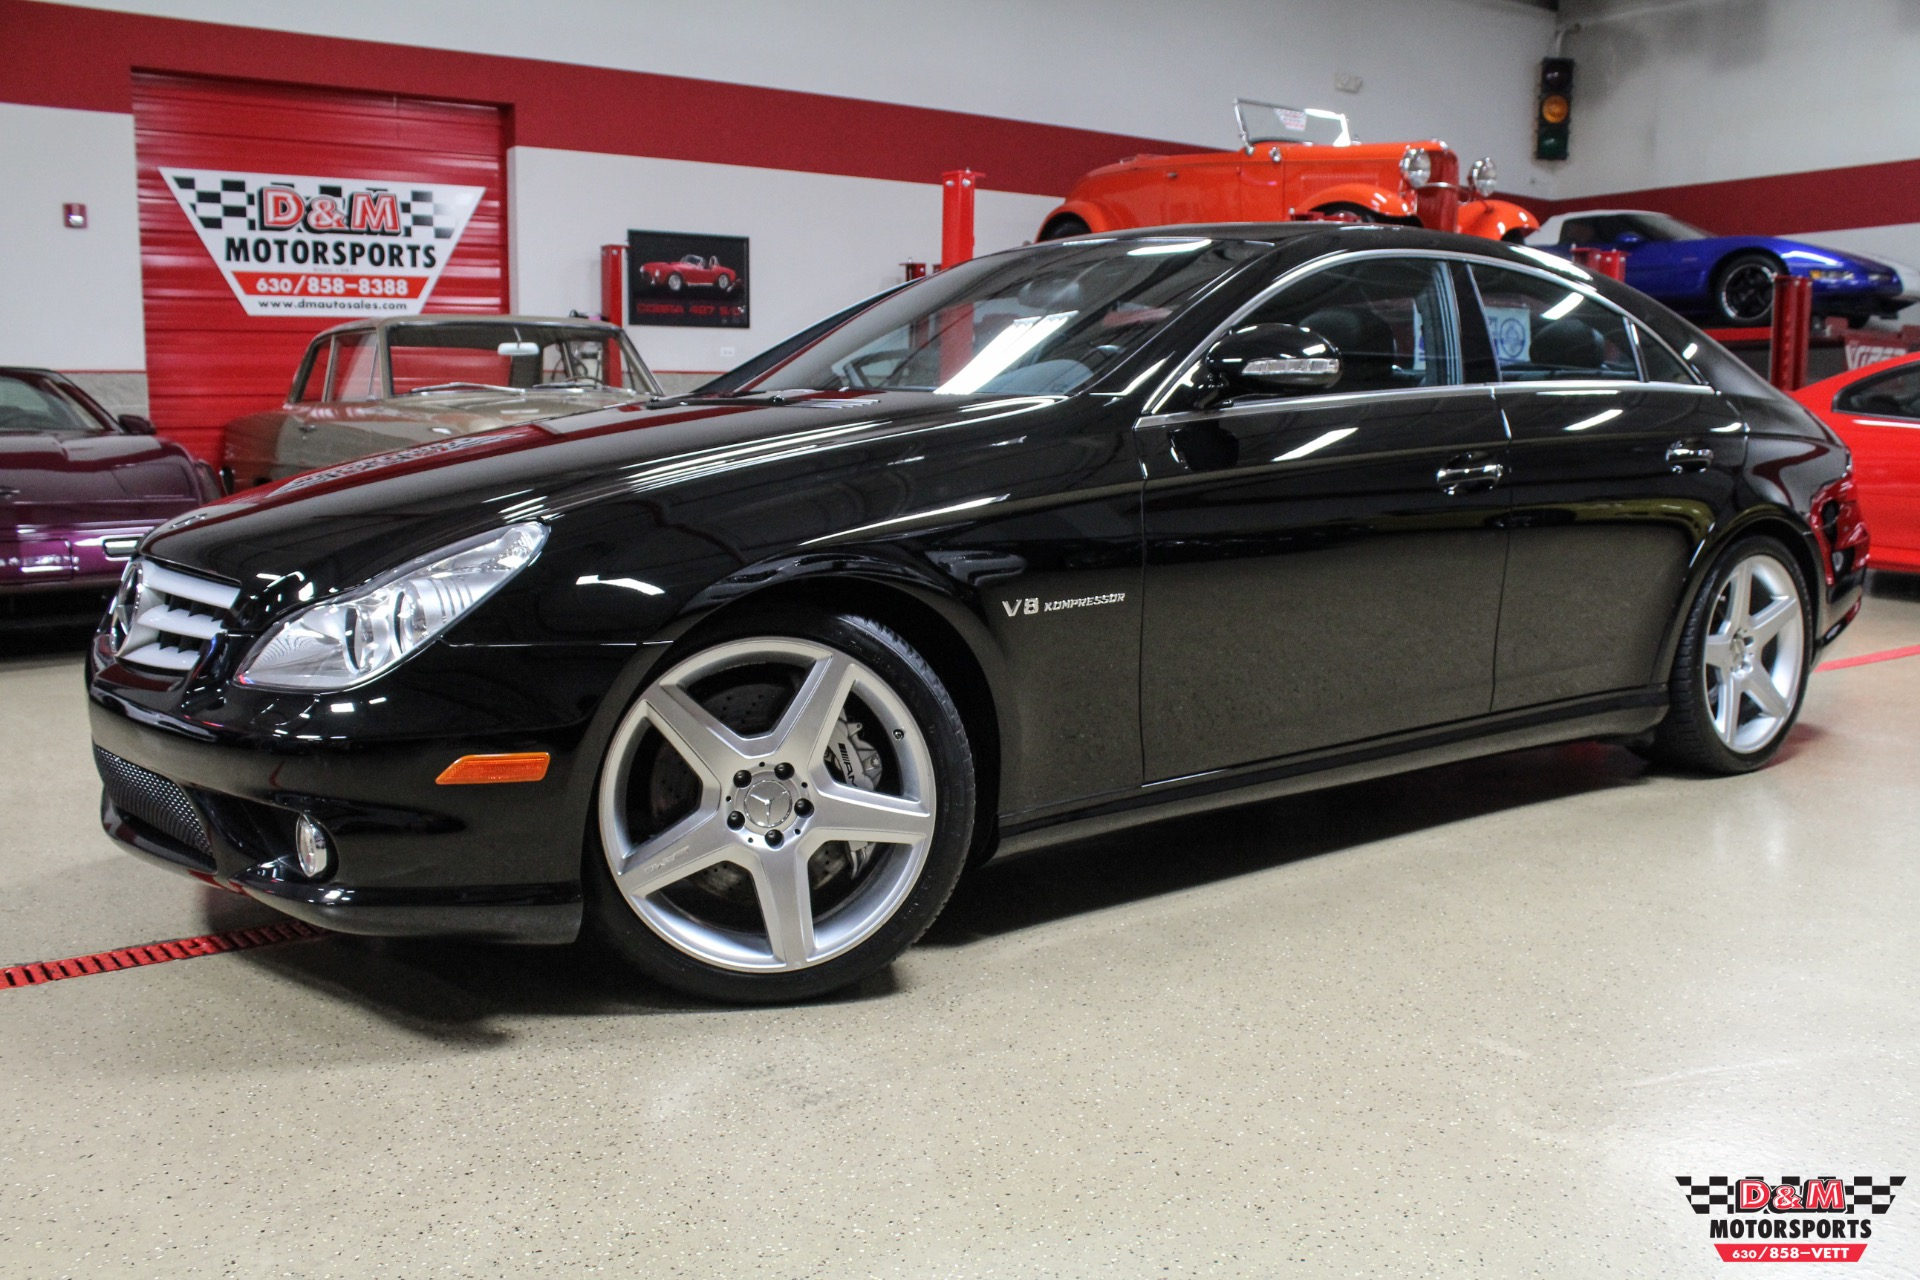 2006 mercedes benz cls 55 amg stock m6129 for sale near for 2006 mercedes benz cls55 amg